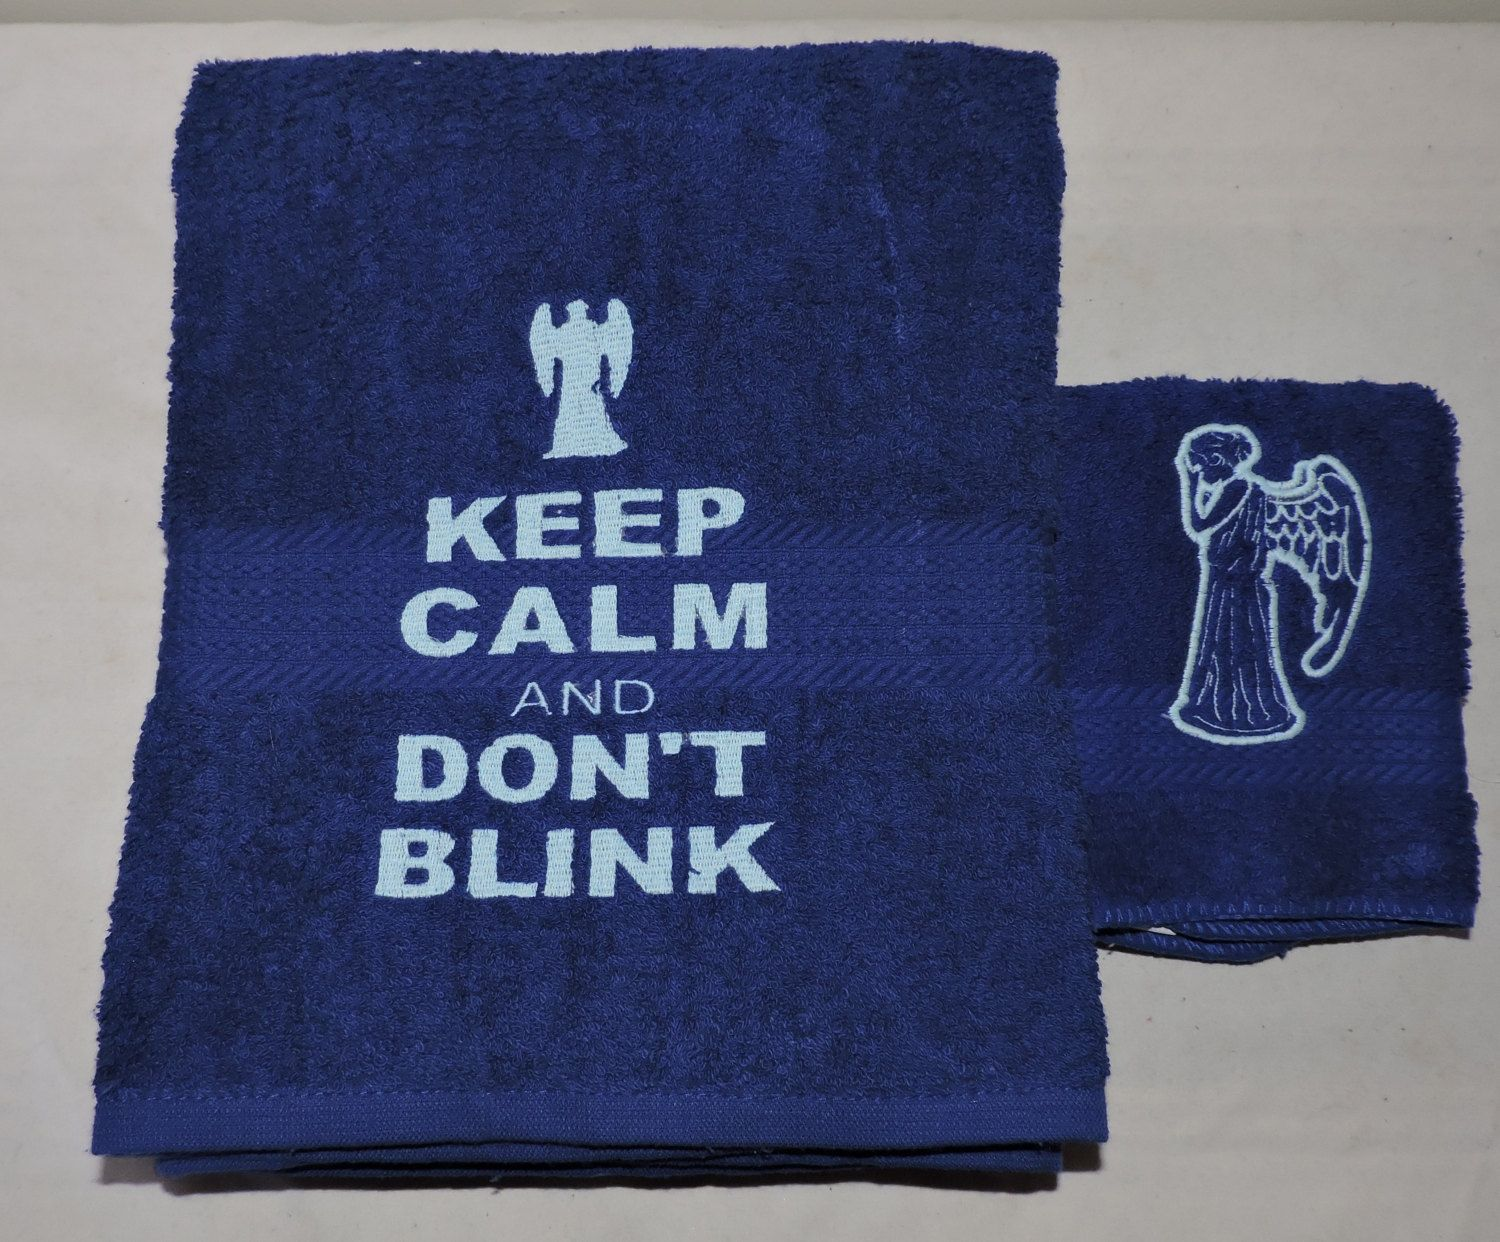 RTS Weeping Angel & Don't Blink Embroidered Bath Towel set Dr Doctor on doctor who tooth burshes, doctor who cyber controller, doctor who bathroom decor, doctor who stationery, doctor who clock, doctor who bathroom ideas, doctor who place mates, doctor who candle holder, doctor who pen holder, doctor who vs daleks, doctor who home decor, doctor who table lamp, doctor who quilt, doctor who furniture, doctor who puzzle, doctor who charger, doctor who themed bathroom, doctor who basket, doctor who umbrella, doctor who jewelry,